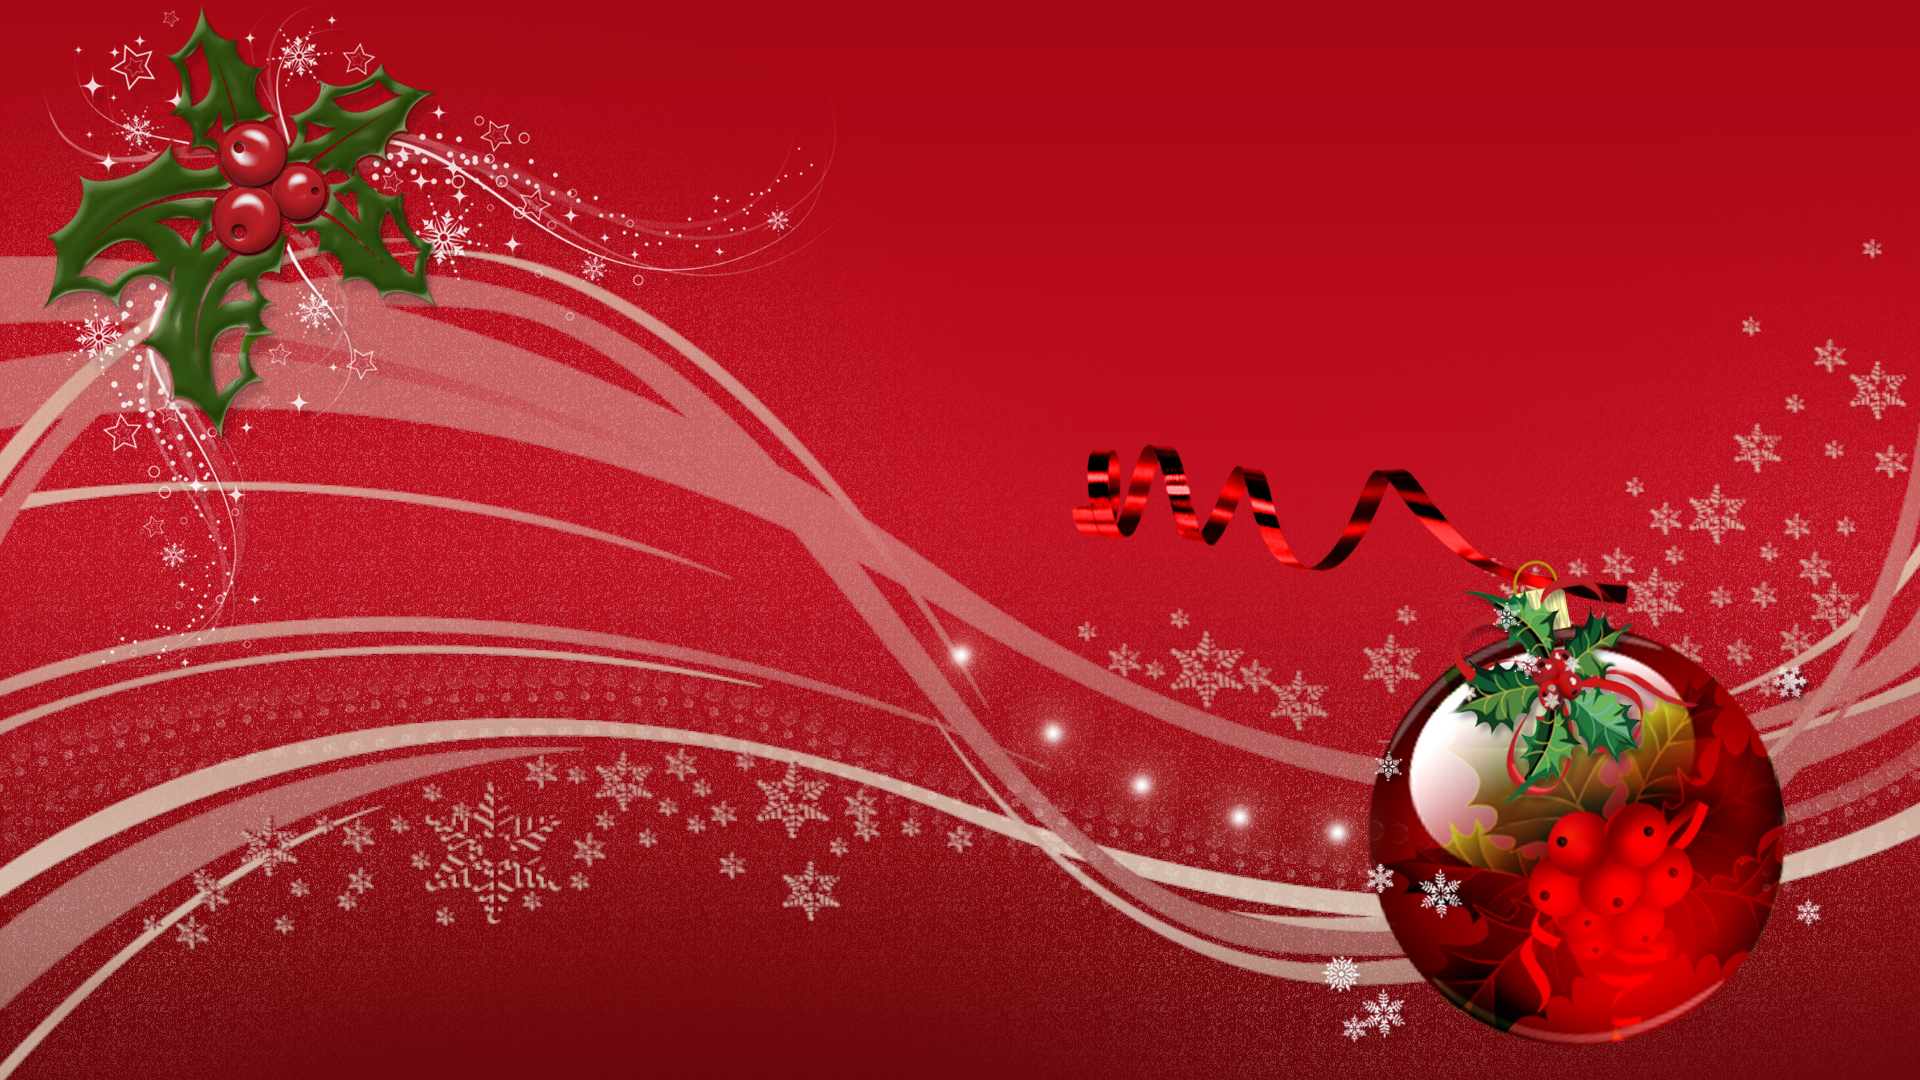 Free christmas screensavers and wallpaper wallpapersafari for Sfondi natalizi 1920x1080